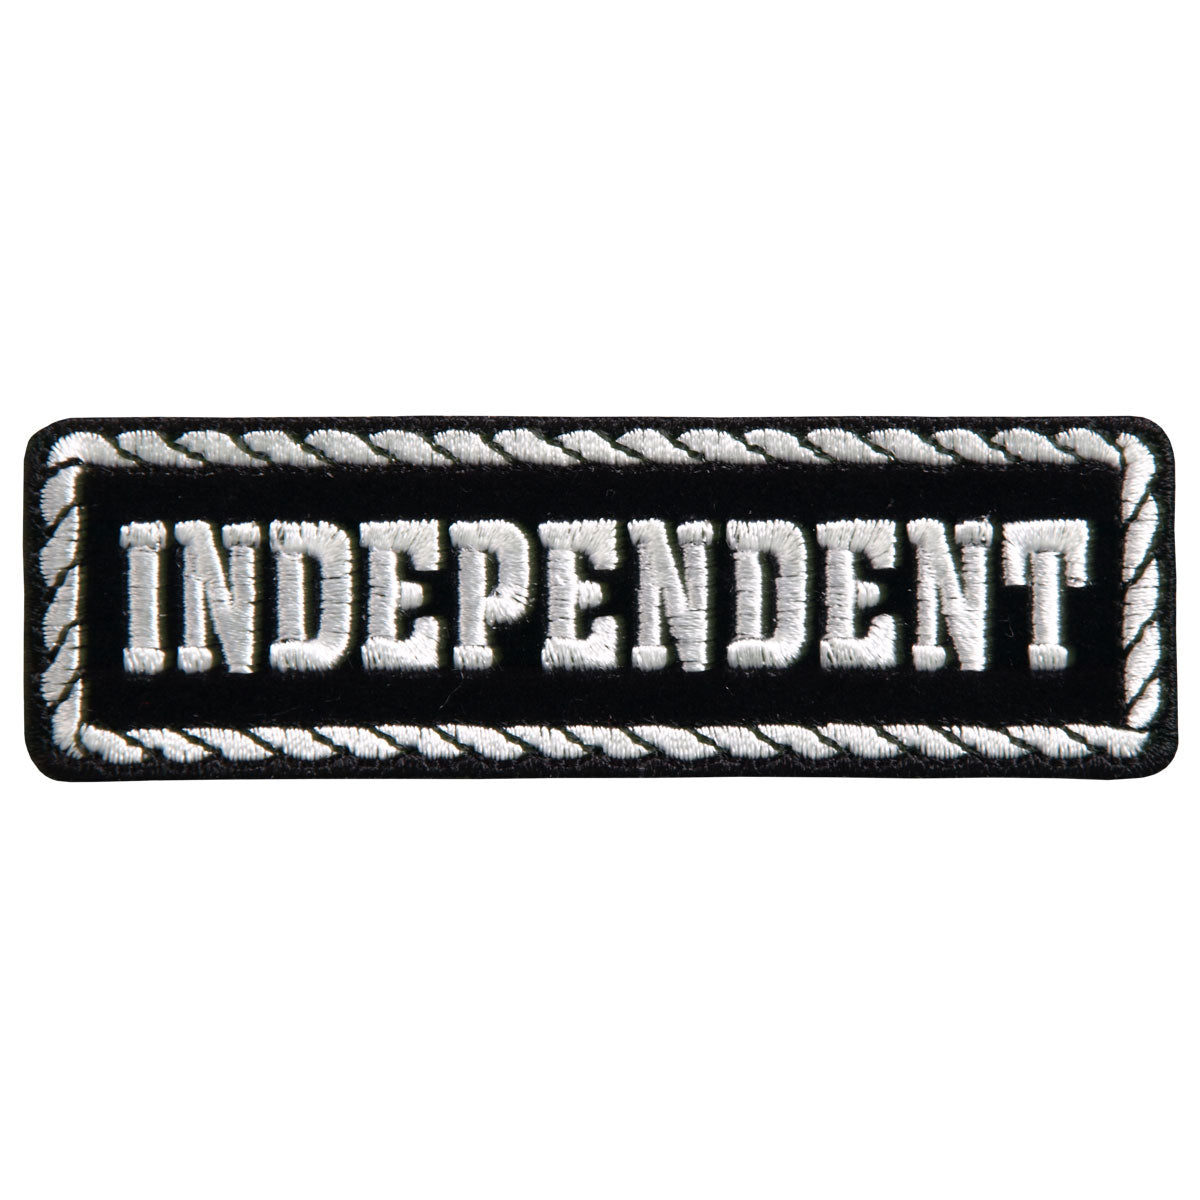 "Hot Leathers Officer Independent 4"" x 1"" Patch"